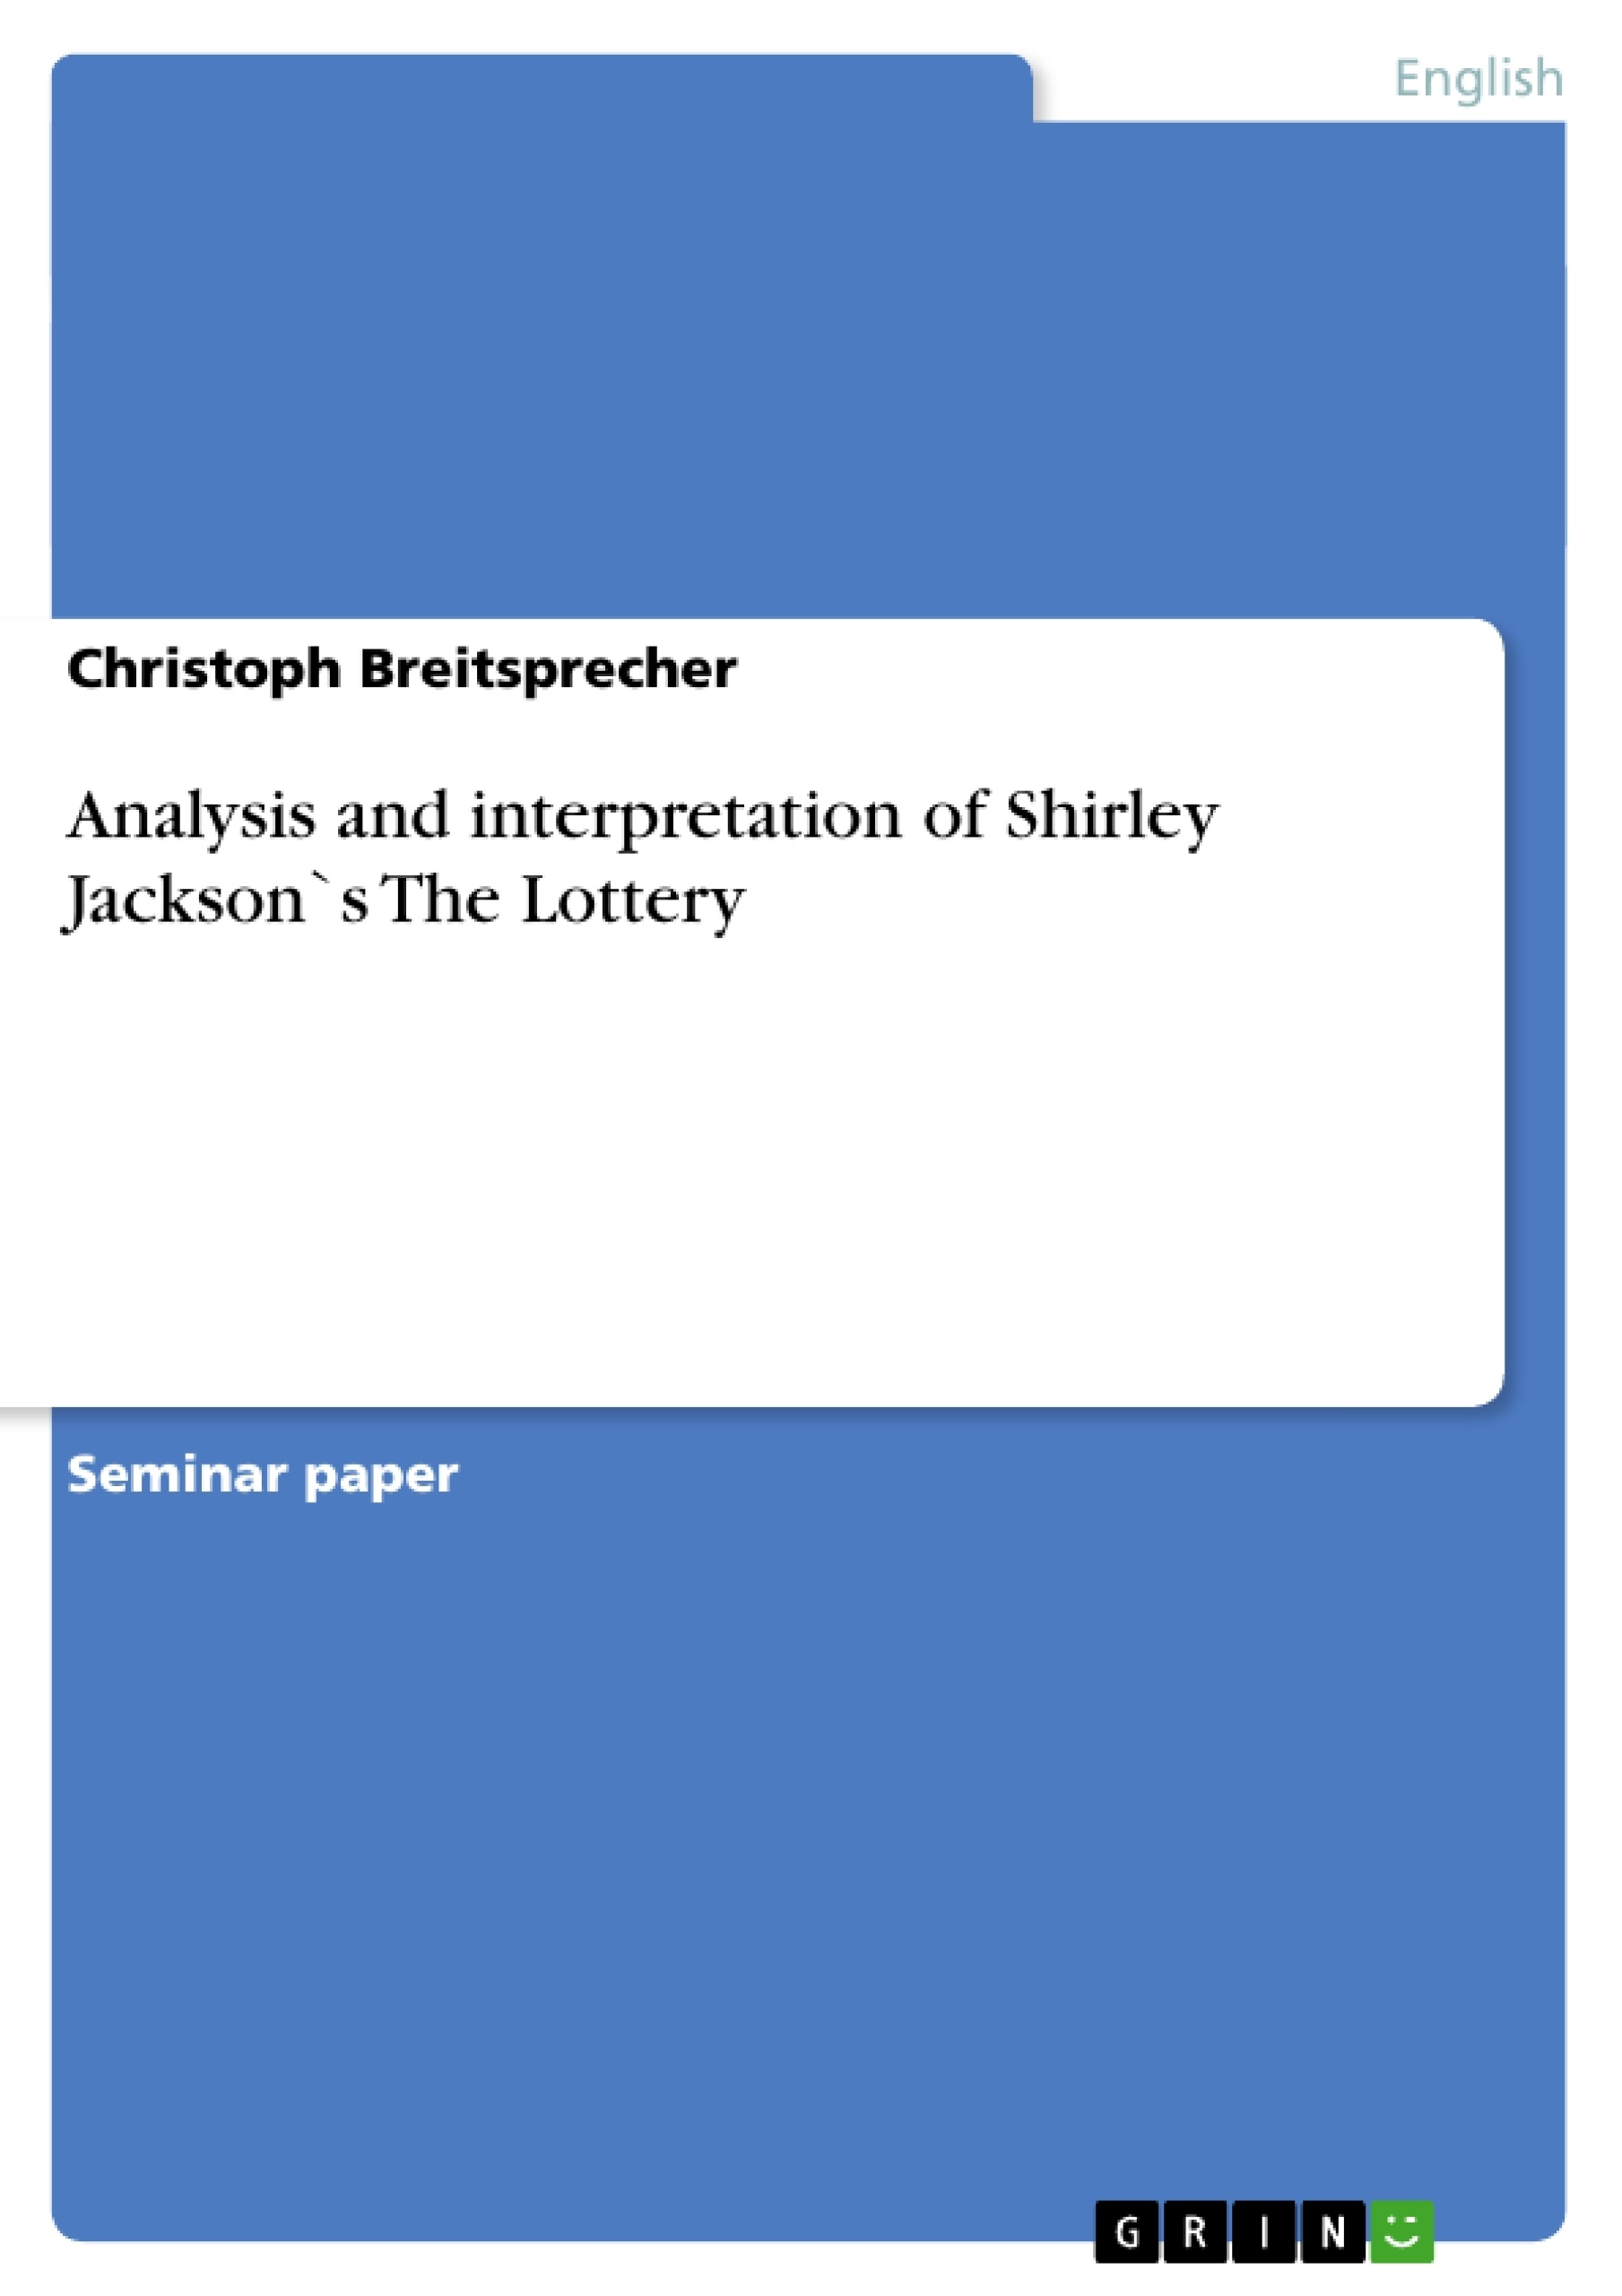 the lottery essays the lottery essay hot essays essay on the  analysis and interpretation of shirley jackson`s the lottery analysis and interpretation of shirley jackson